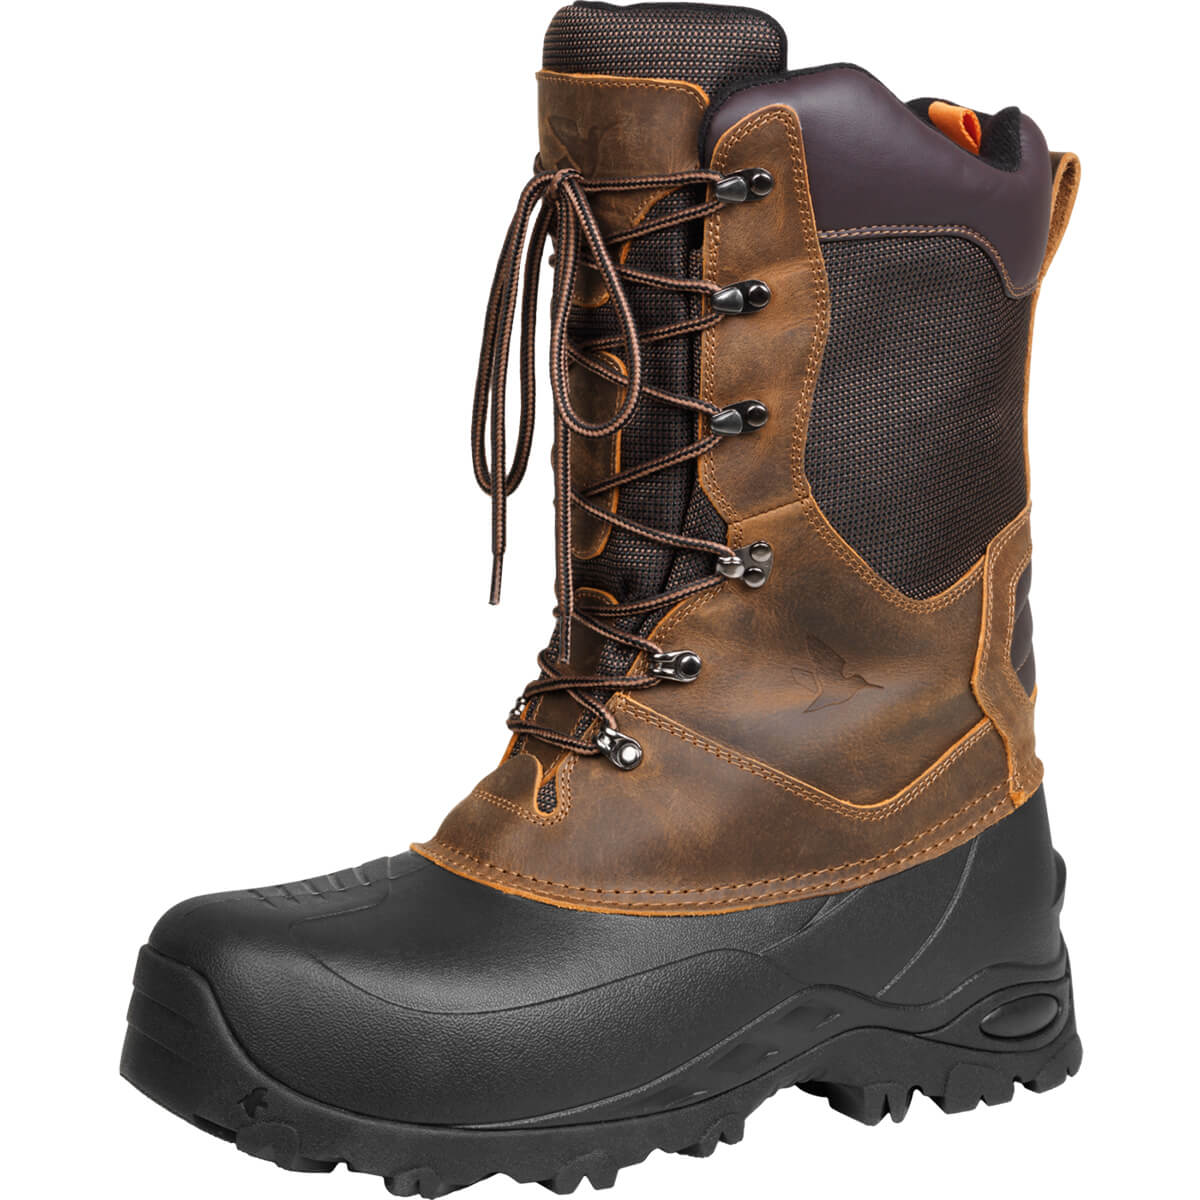 Seeland Thermostiefel North Pac - Schuhe & Stiefel